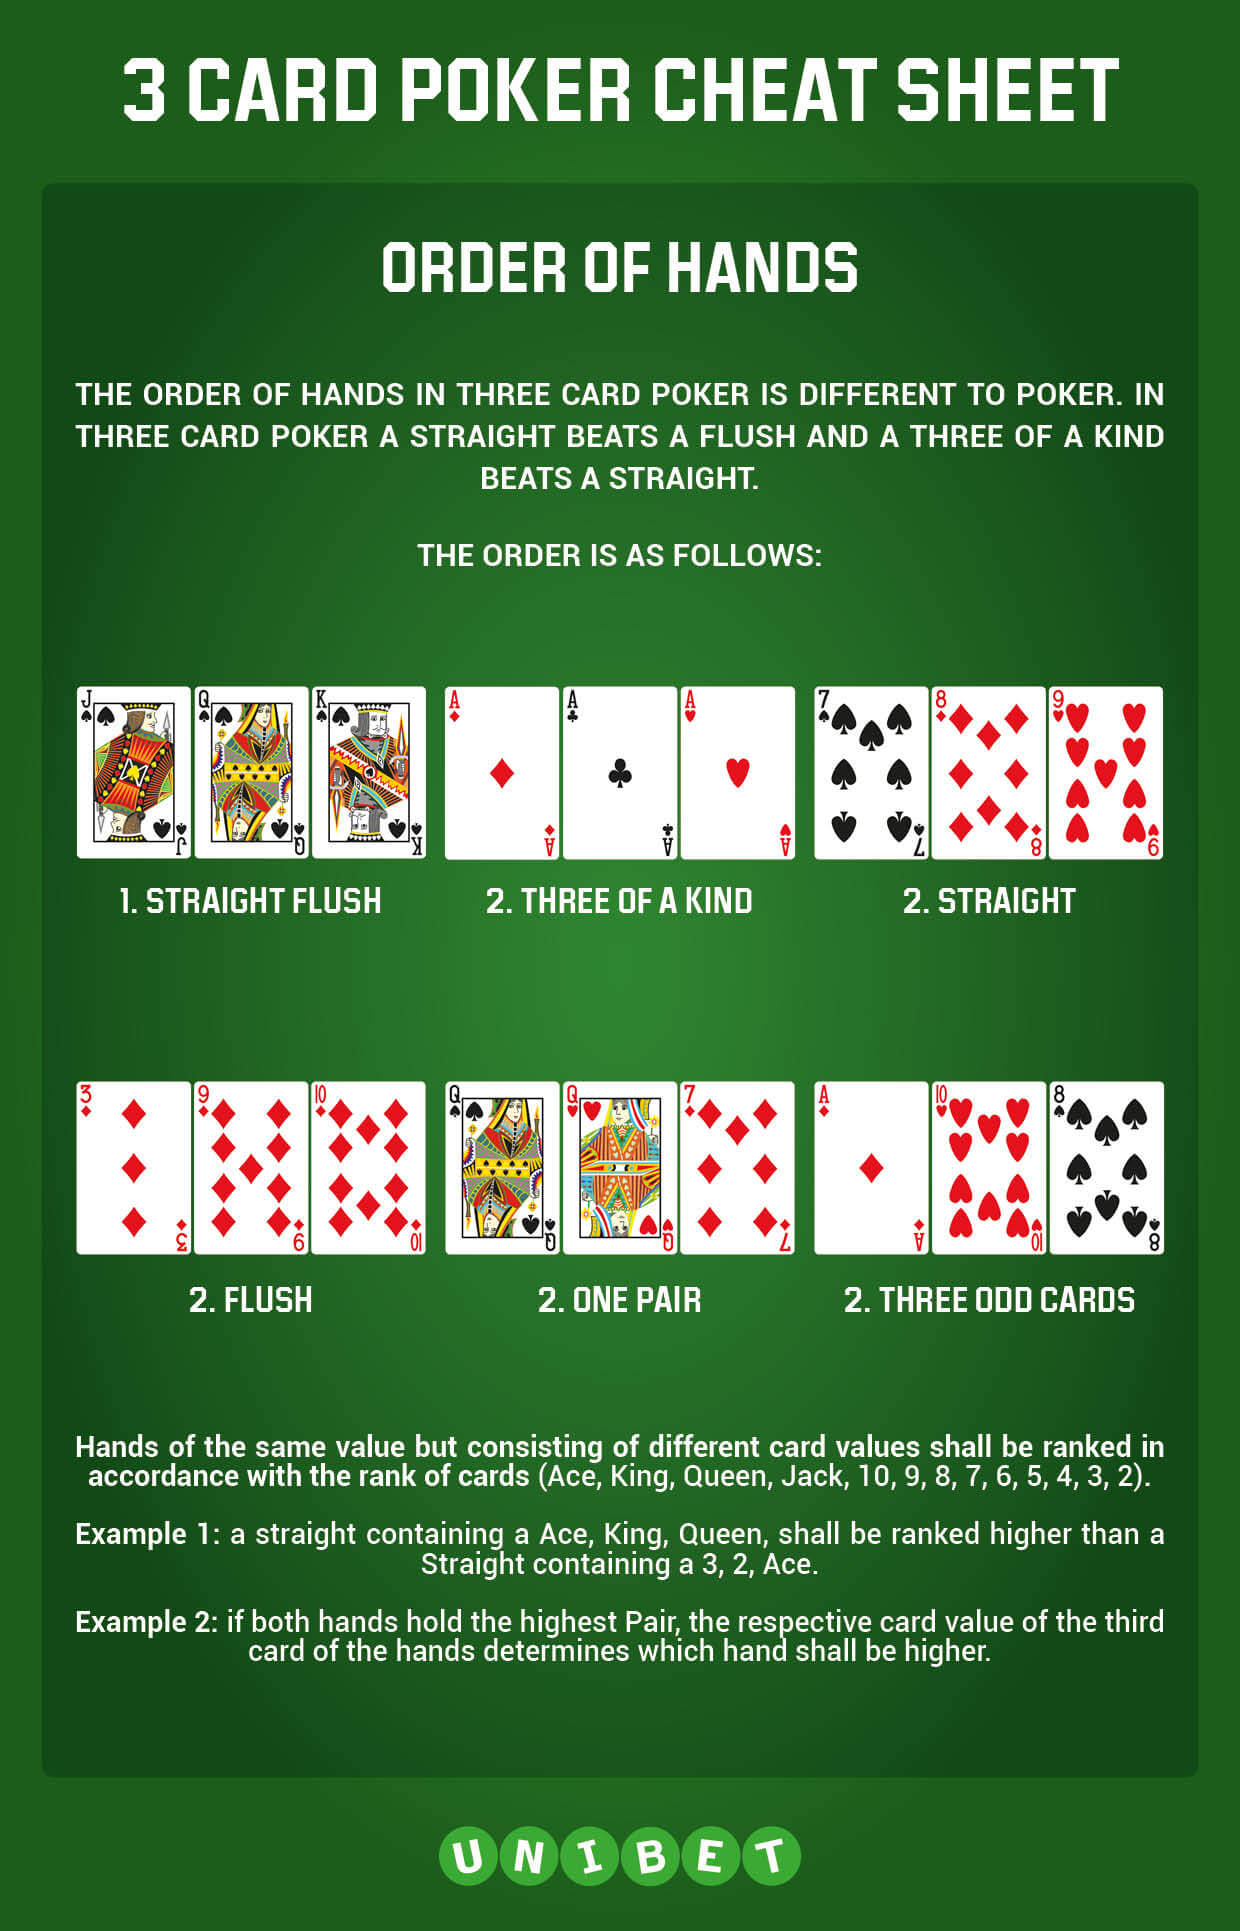 How to play 3 card poker and win idler book of crap towns